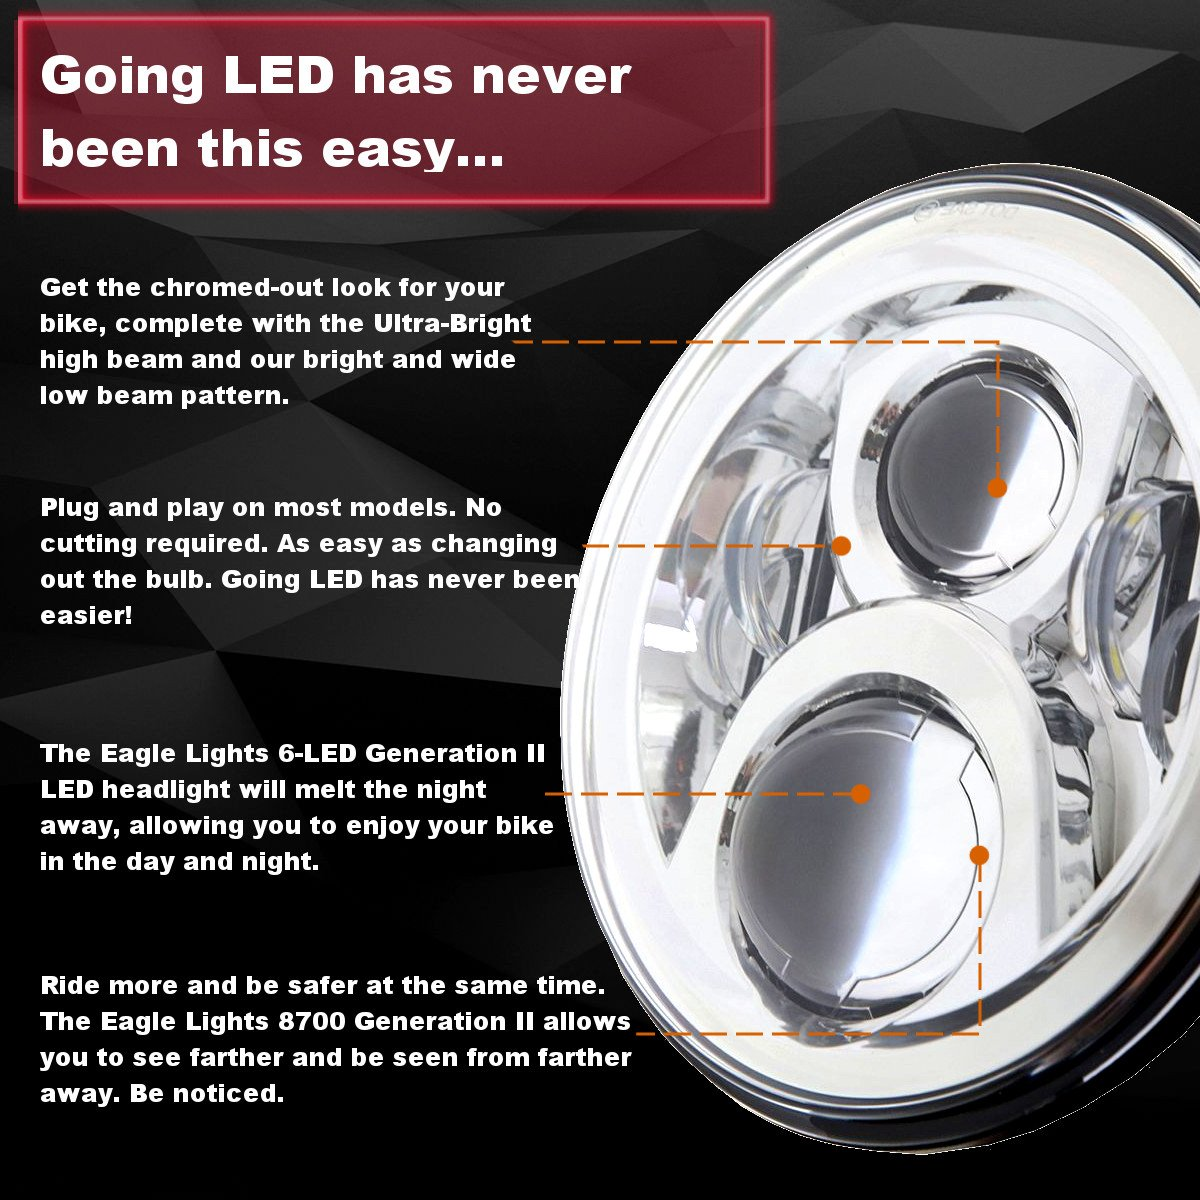 Eagle Lights 8700g2 7 Round Generation 2 Projection Led Exciting Scout Crafts 1 Or Headlamp Headlight For Harley Davidson Indian Motorcycle Chrome Automotive